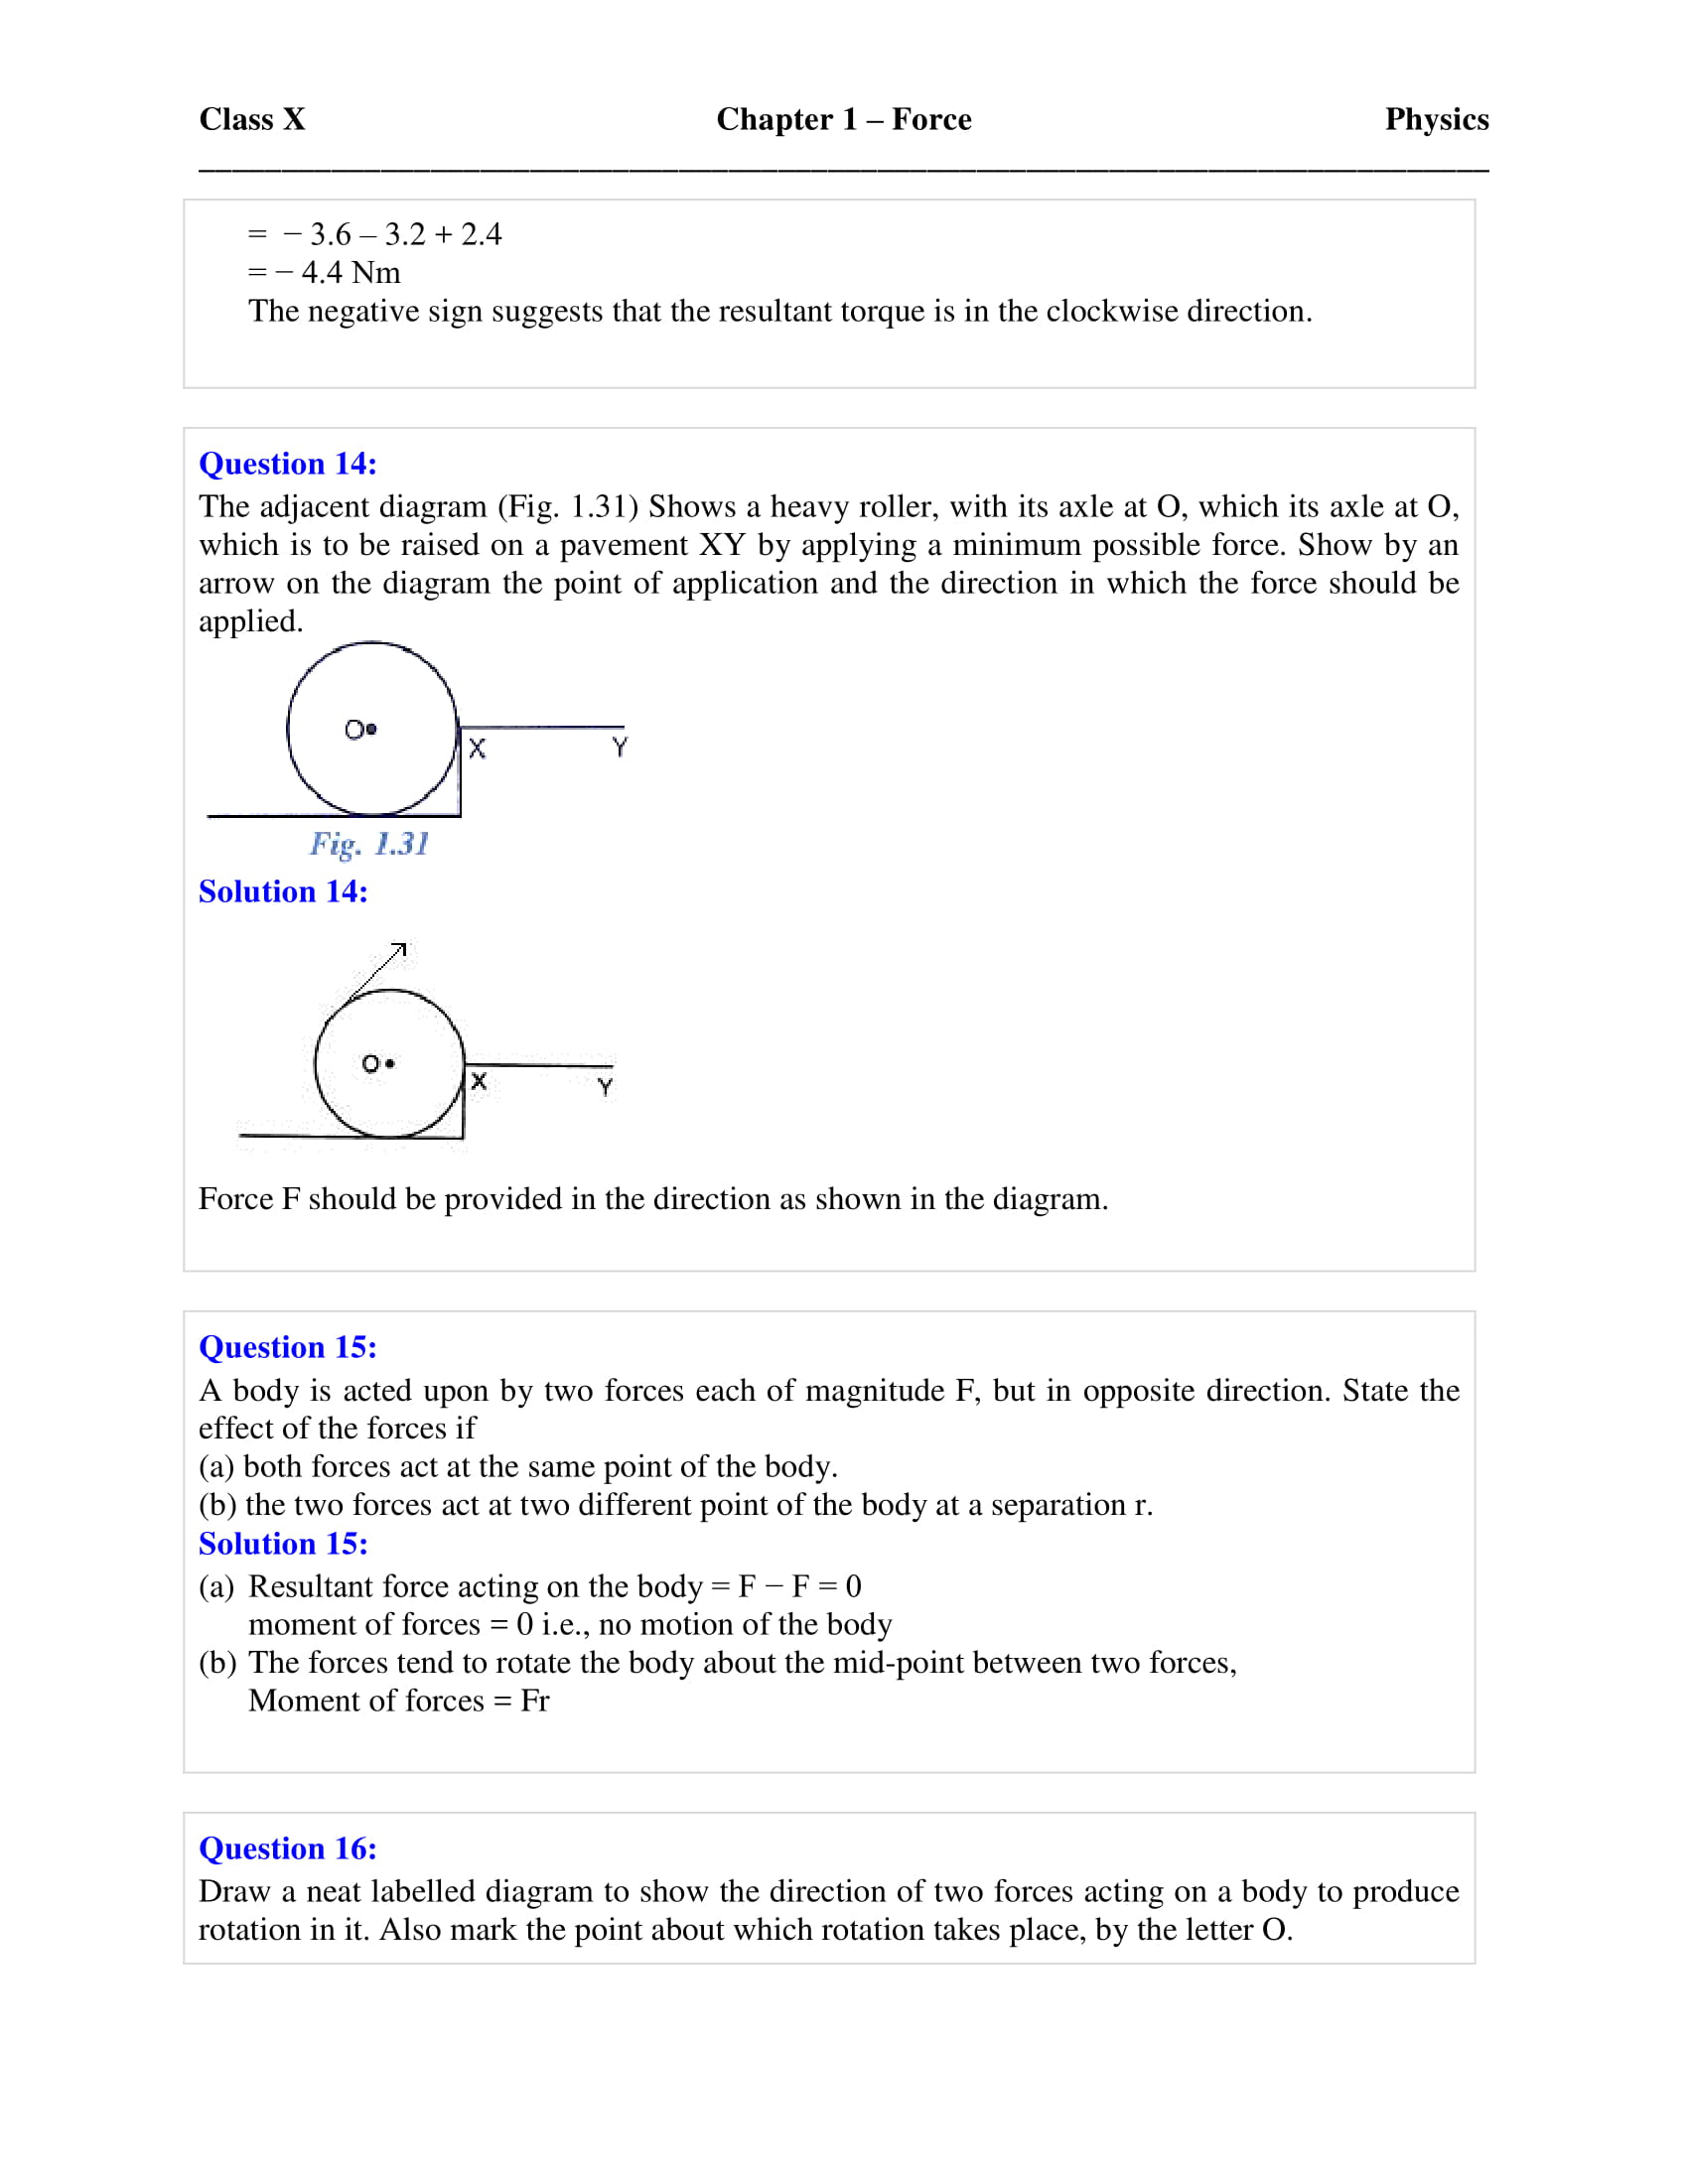 icse-selina-physics-solutions-class-10-chapter-1-force-19